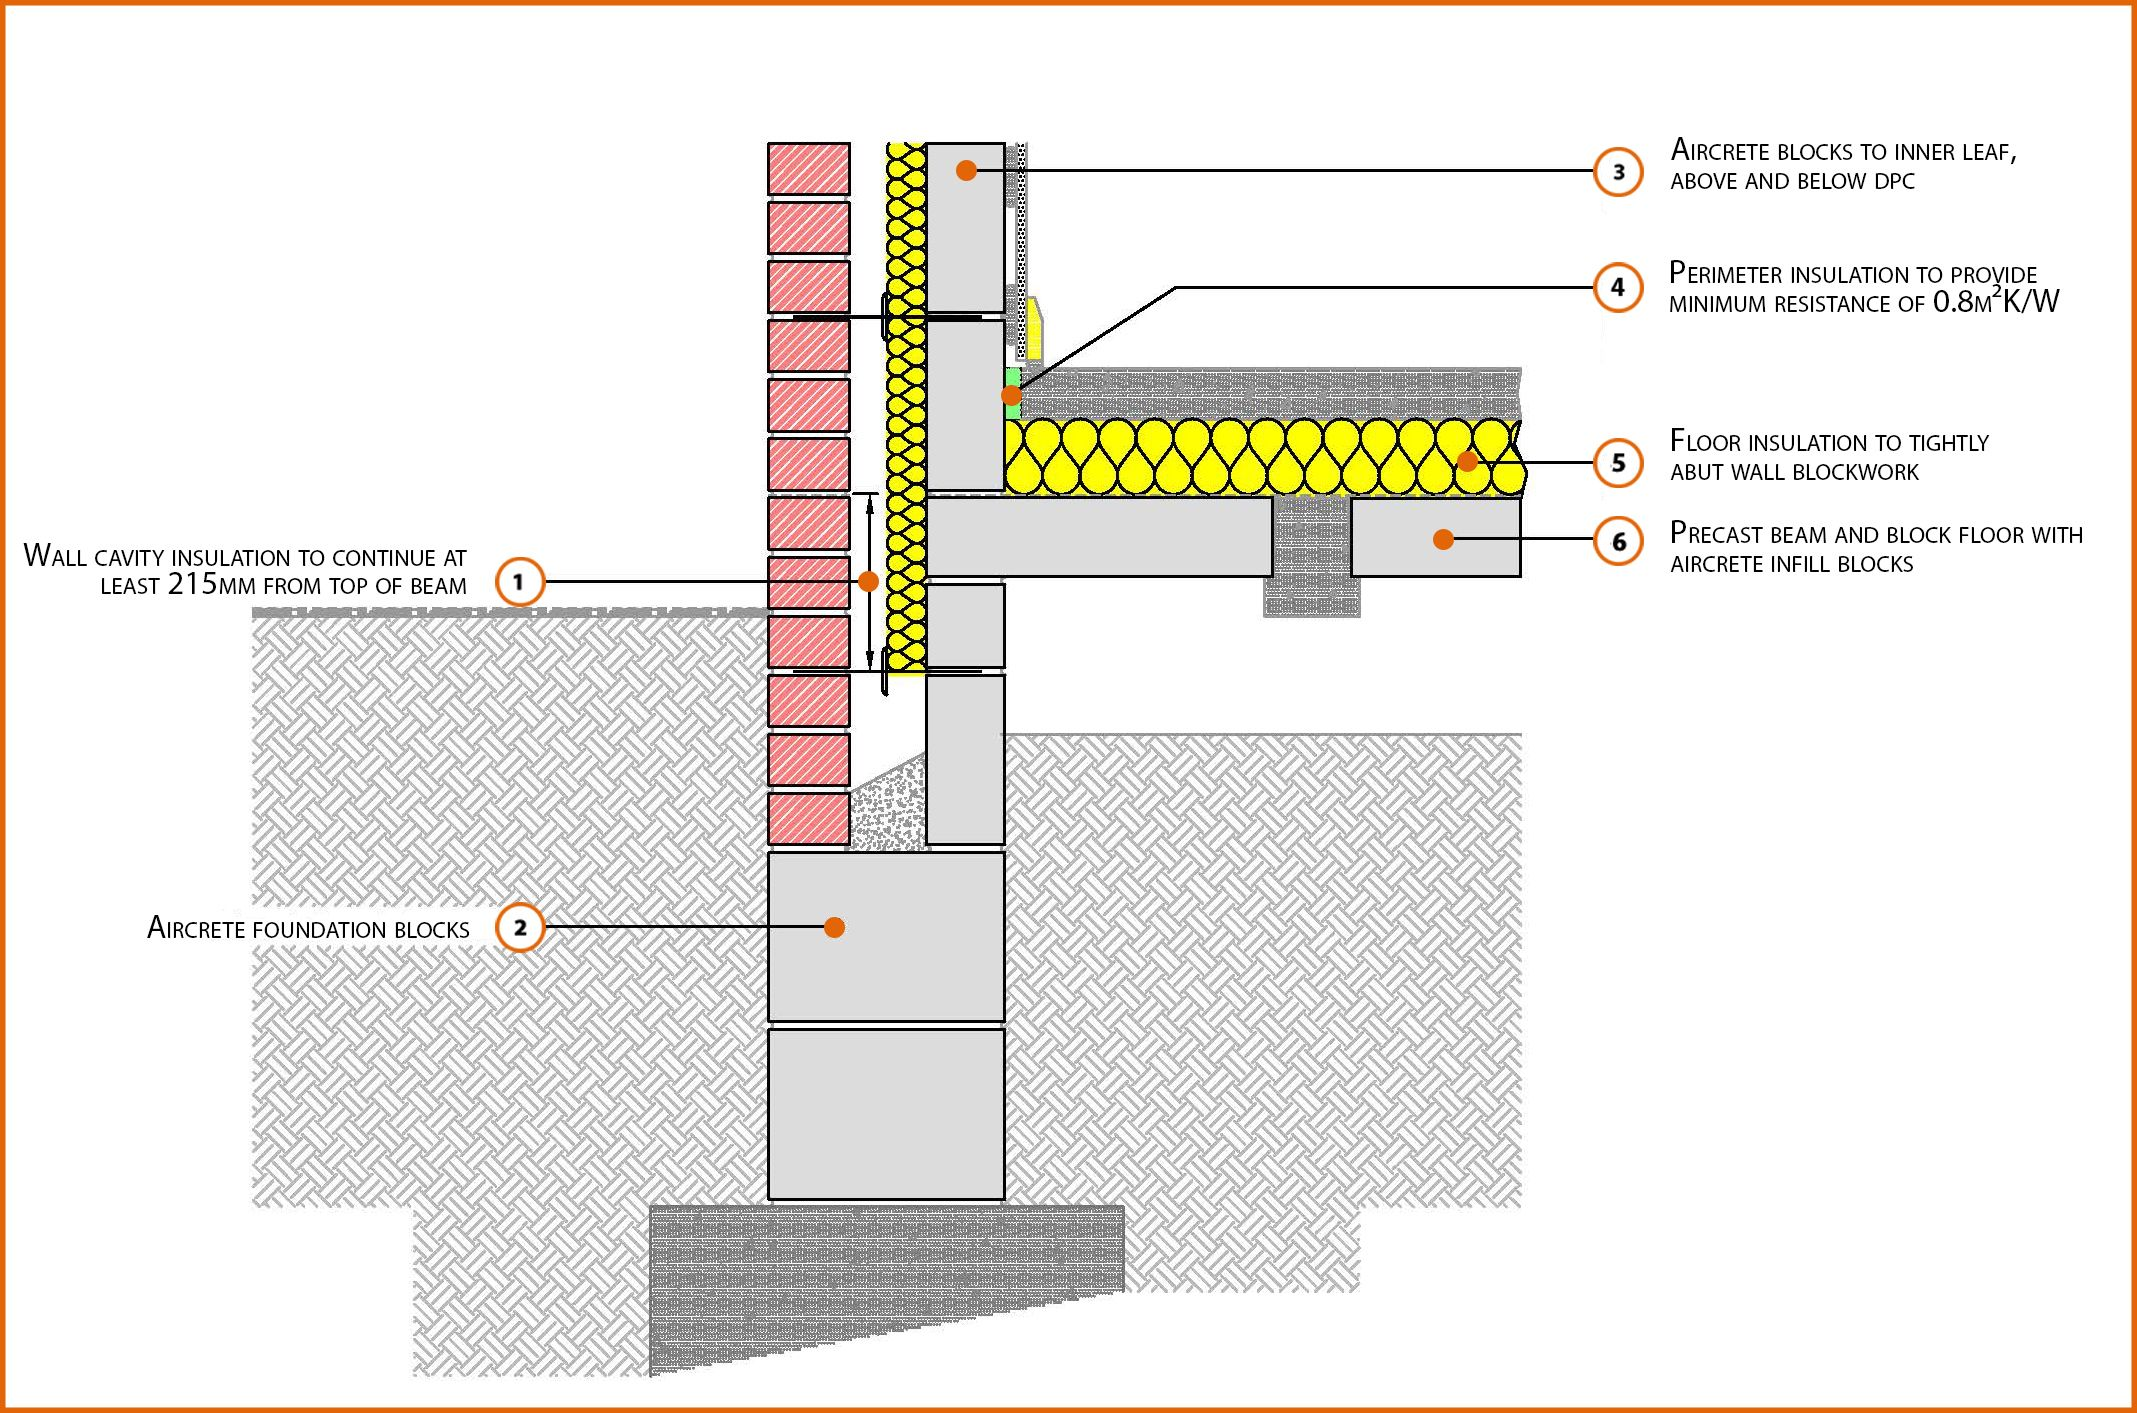 E5mcpf19 suspended beam and block floor insulation above for Block and beam foundation vs slab